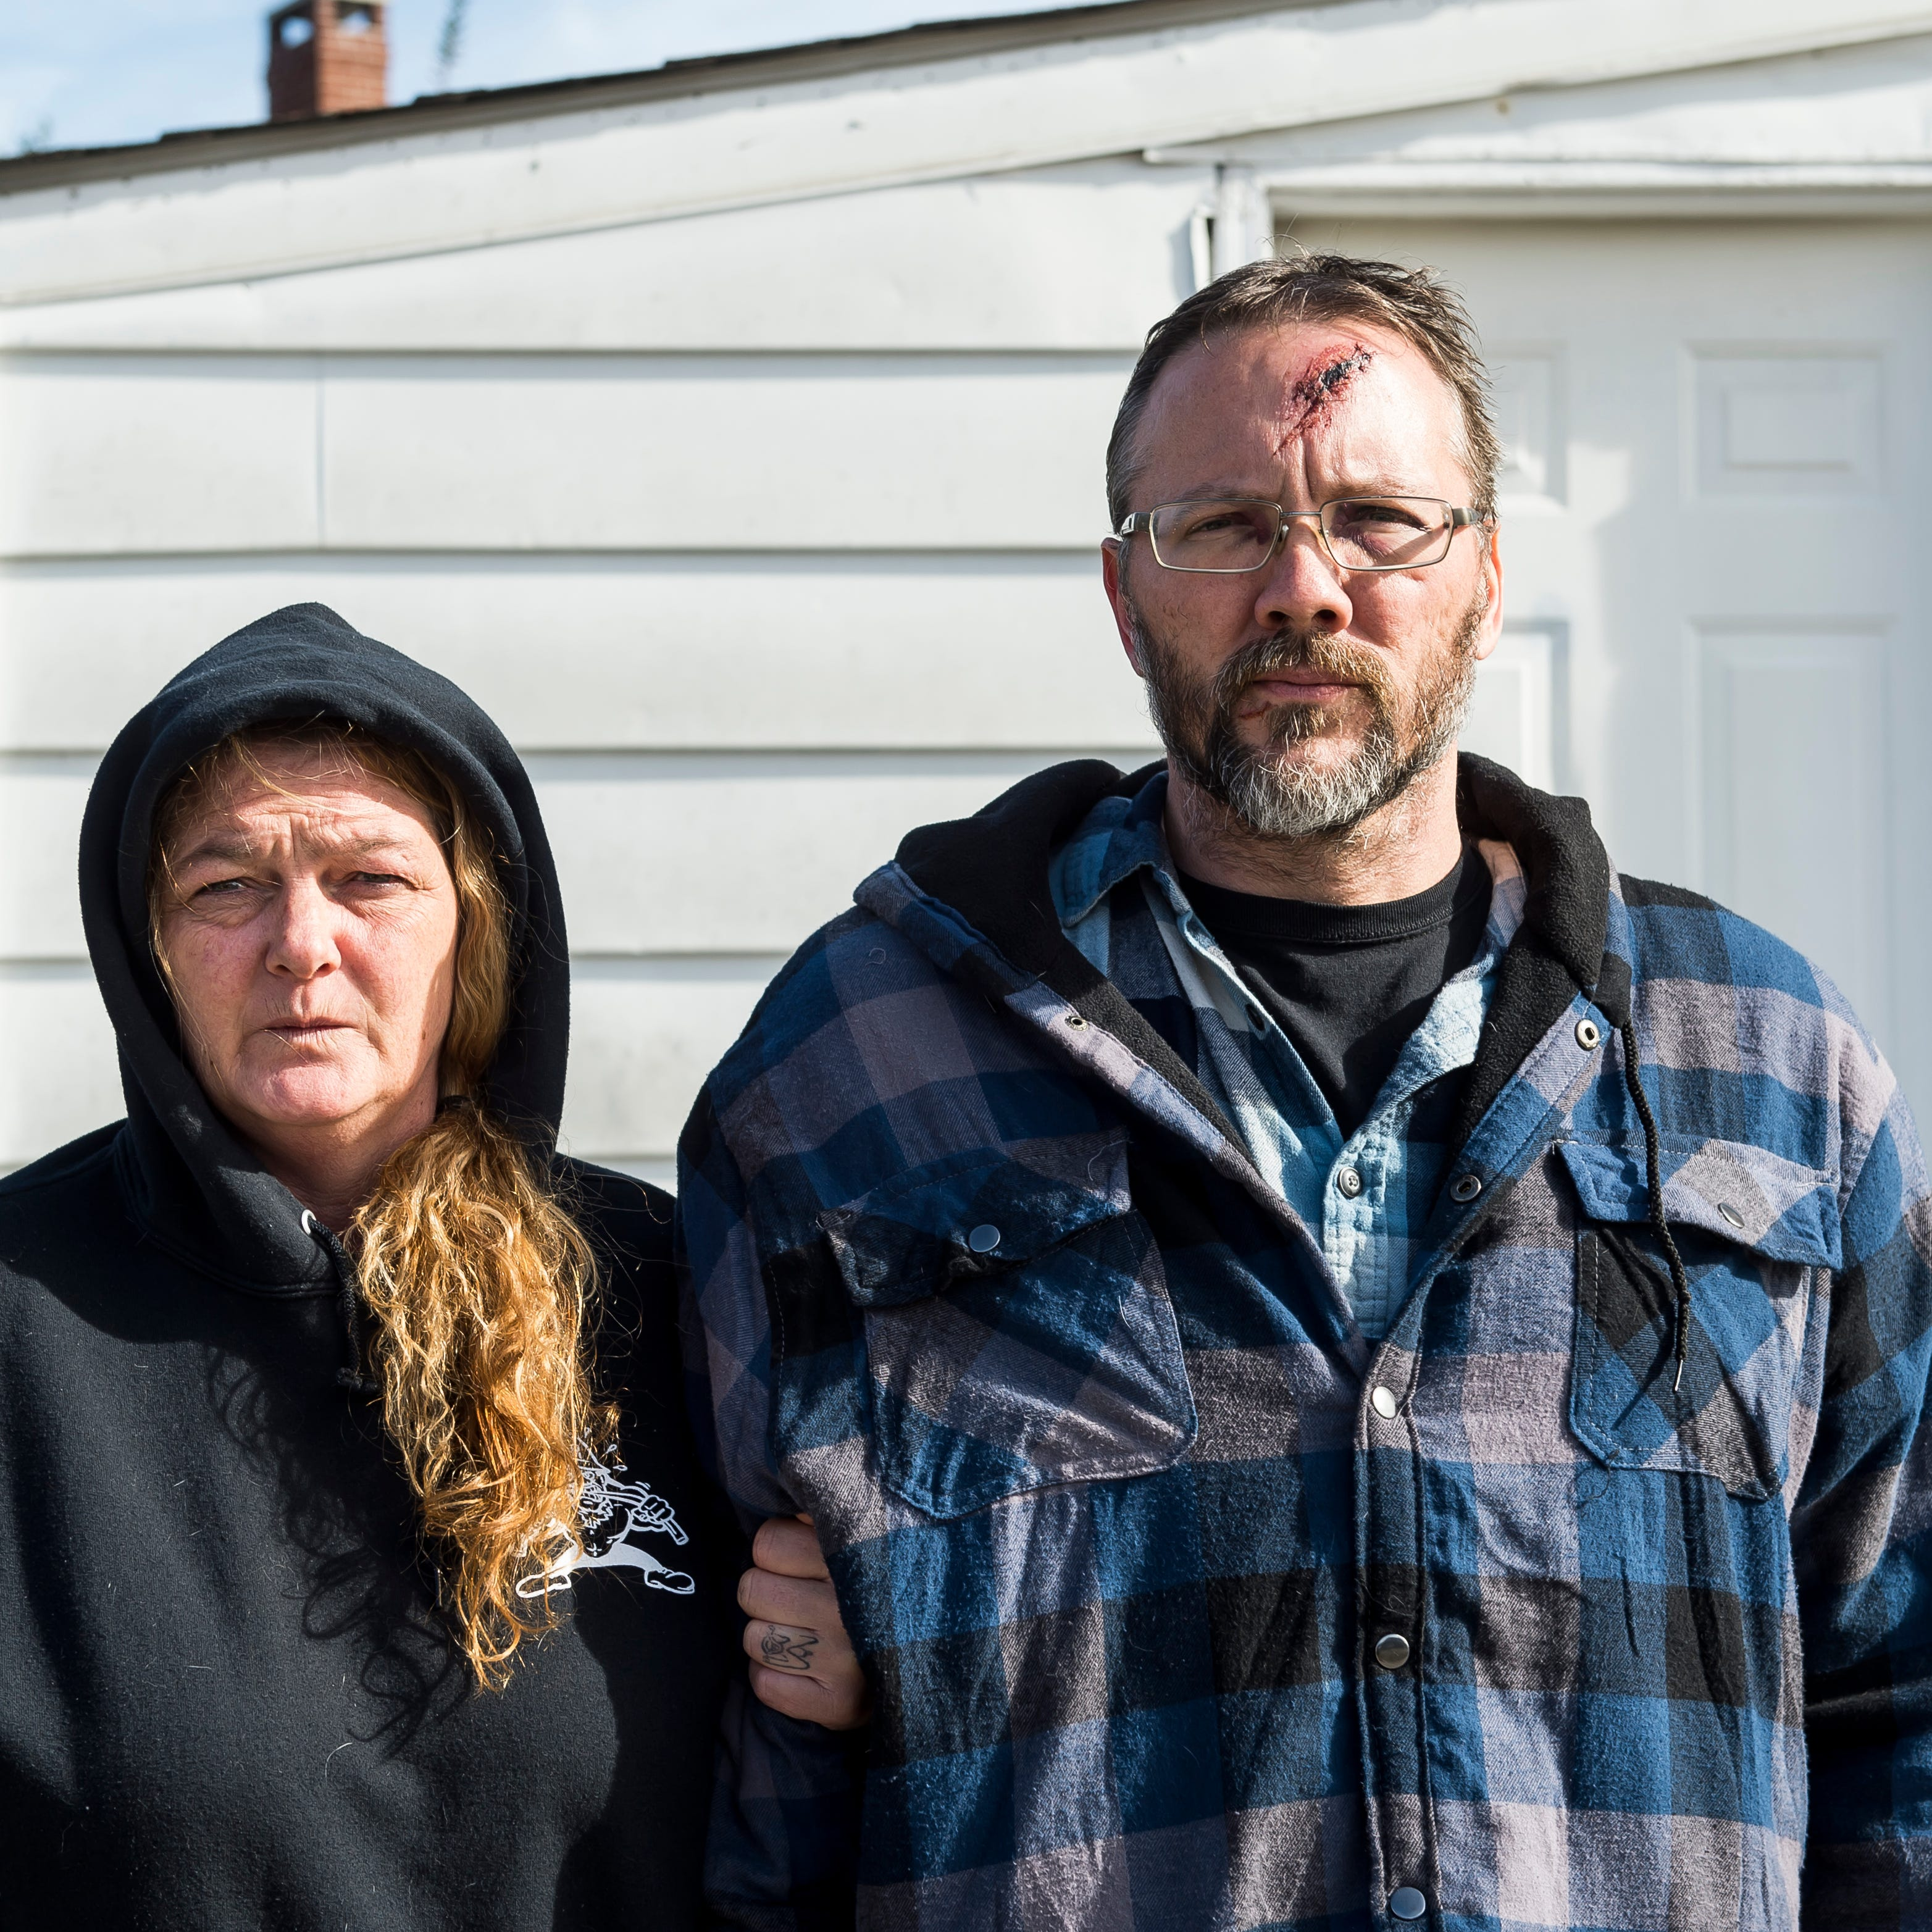 'We need to find these people': Couple describes meat cleaver attack in home invasion